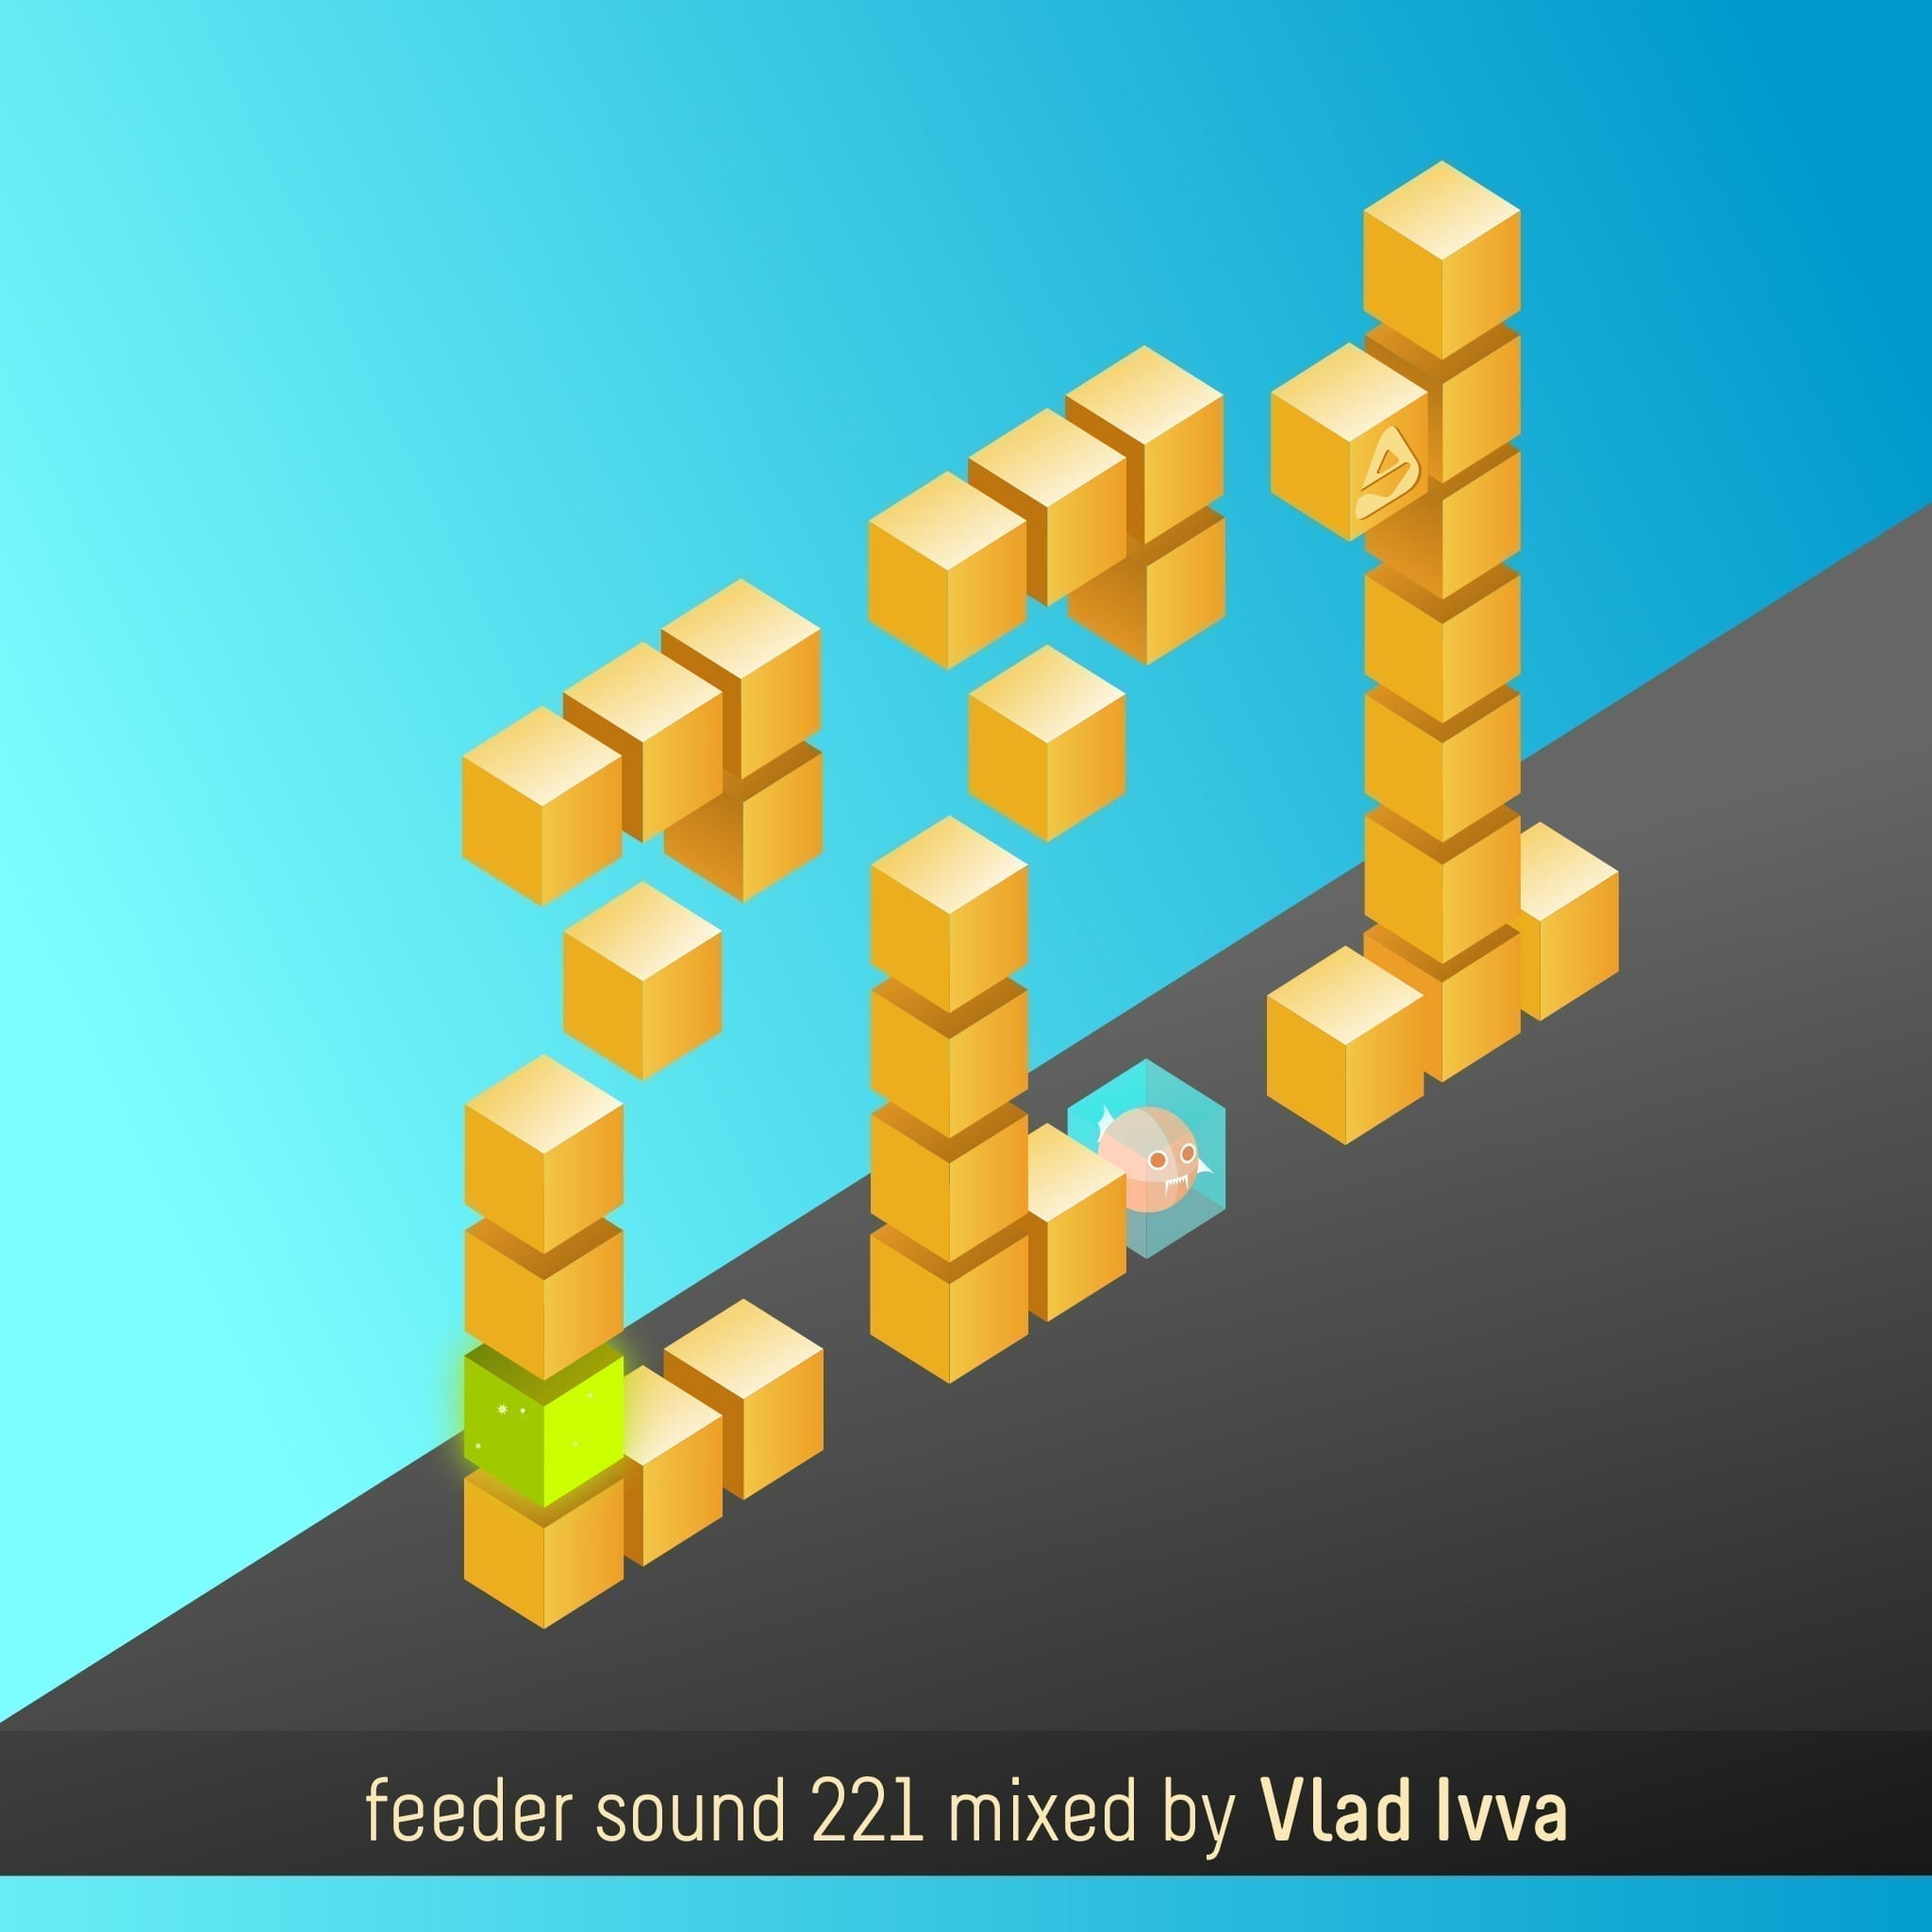 feeder sound 221 mixed by Vlad Ivva article-cover